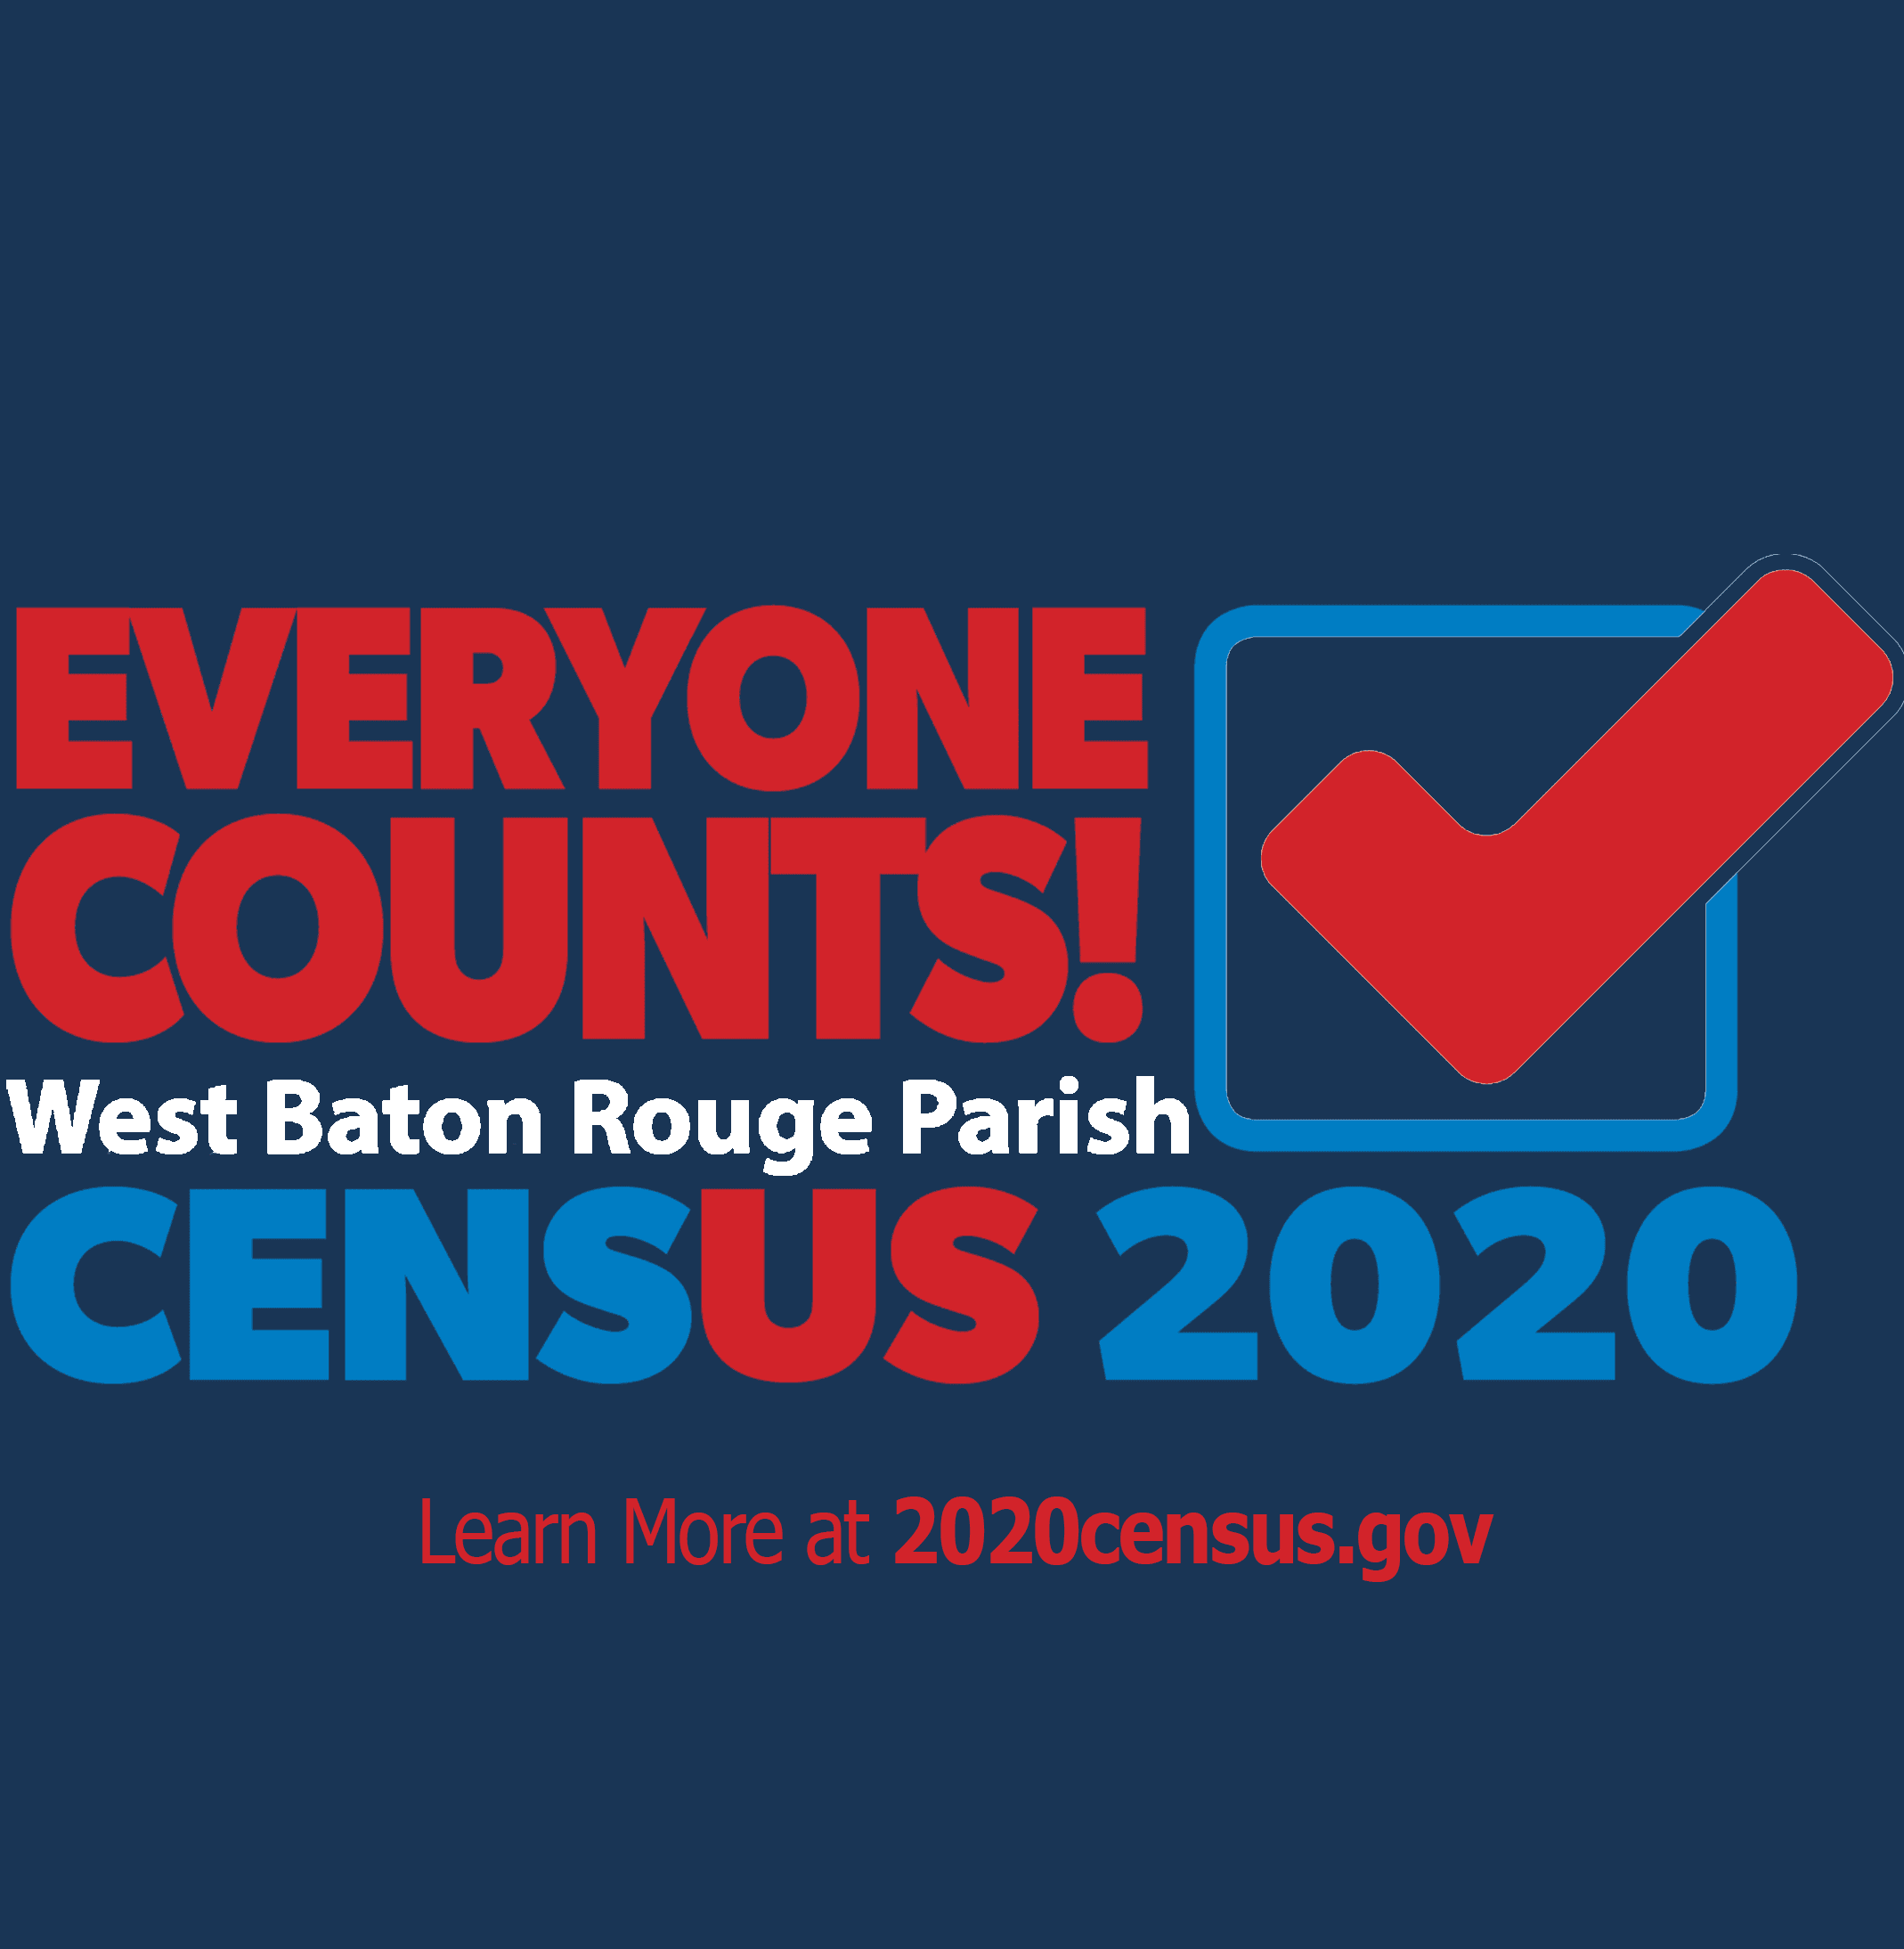 WBR Parish Counts